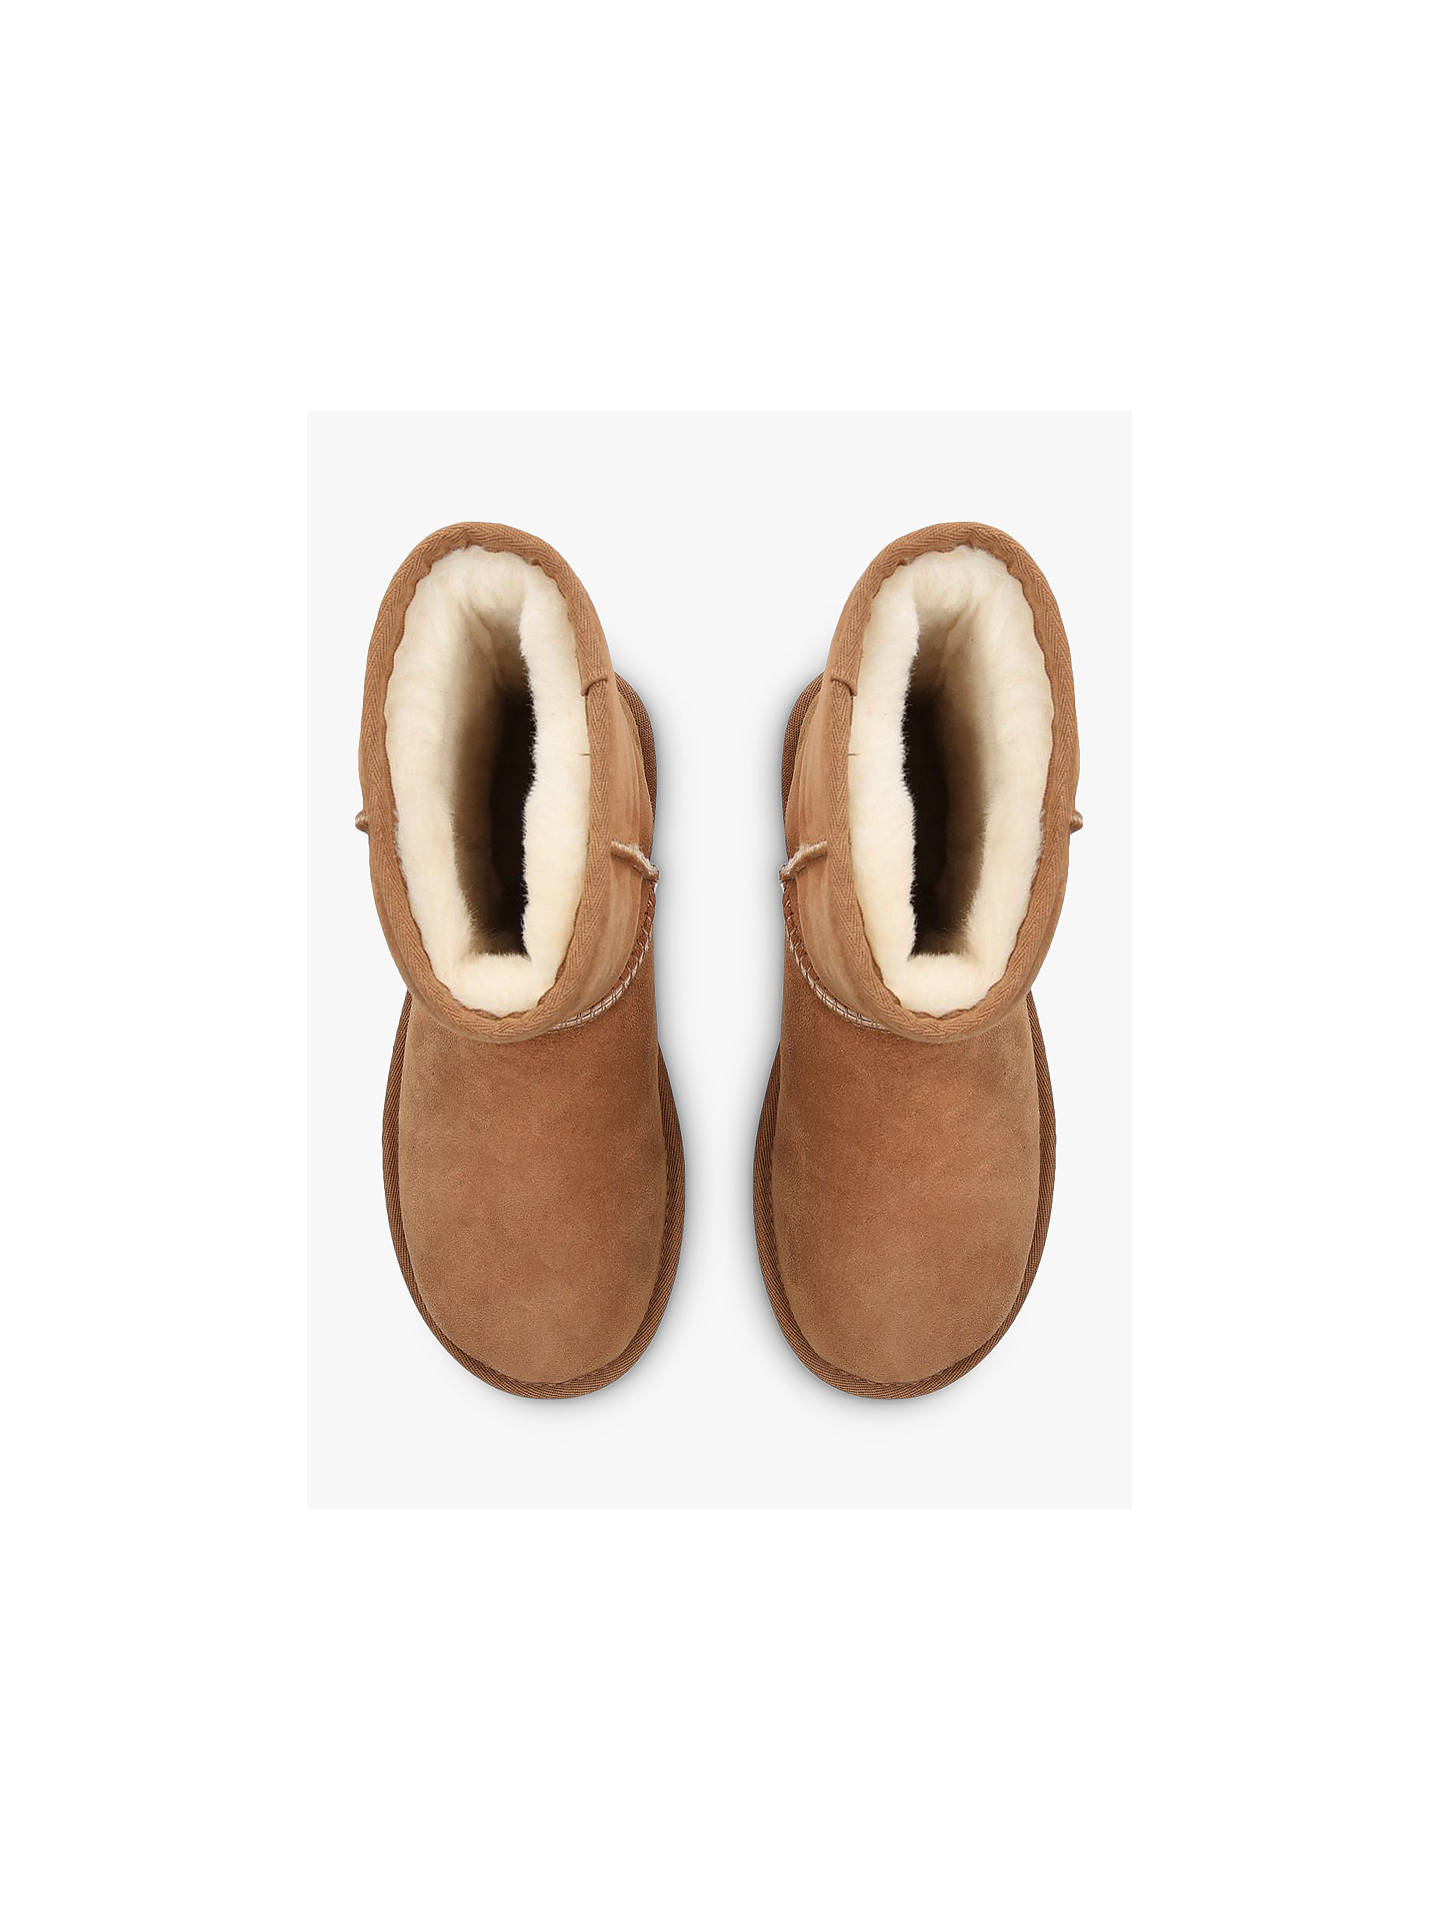 534bda59862 Buy UGG Classic II Short Sheepskin Ankle Boots, Chestnut, 6 Online at  johnlewis.